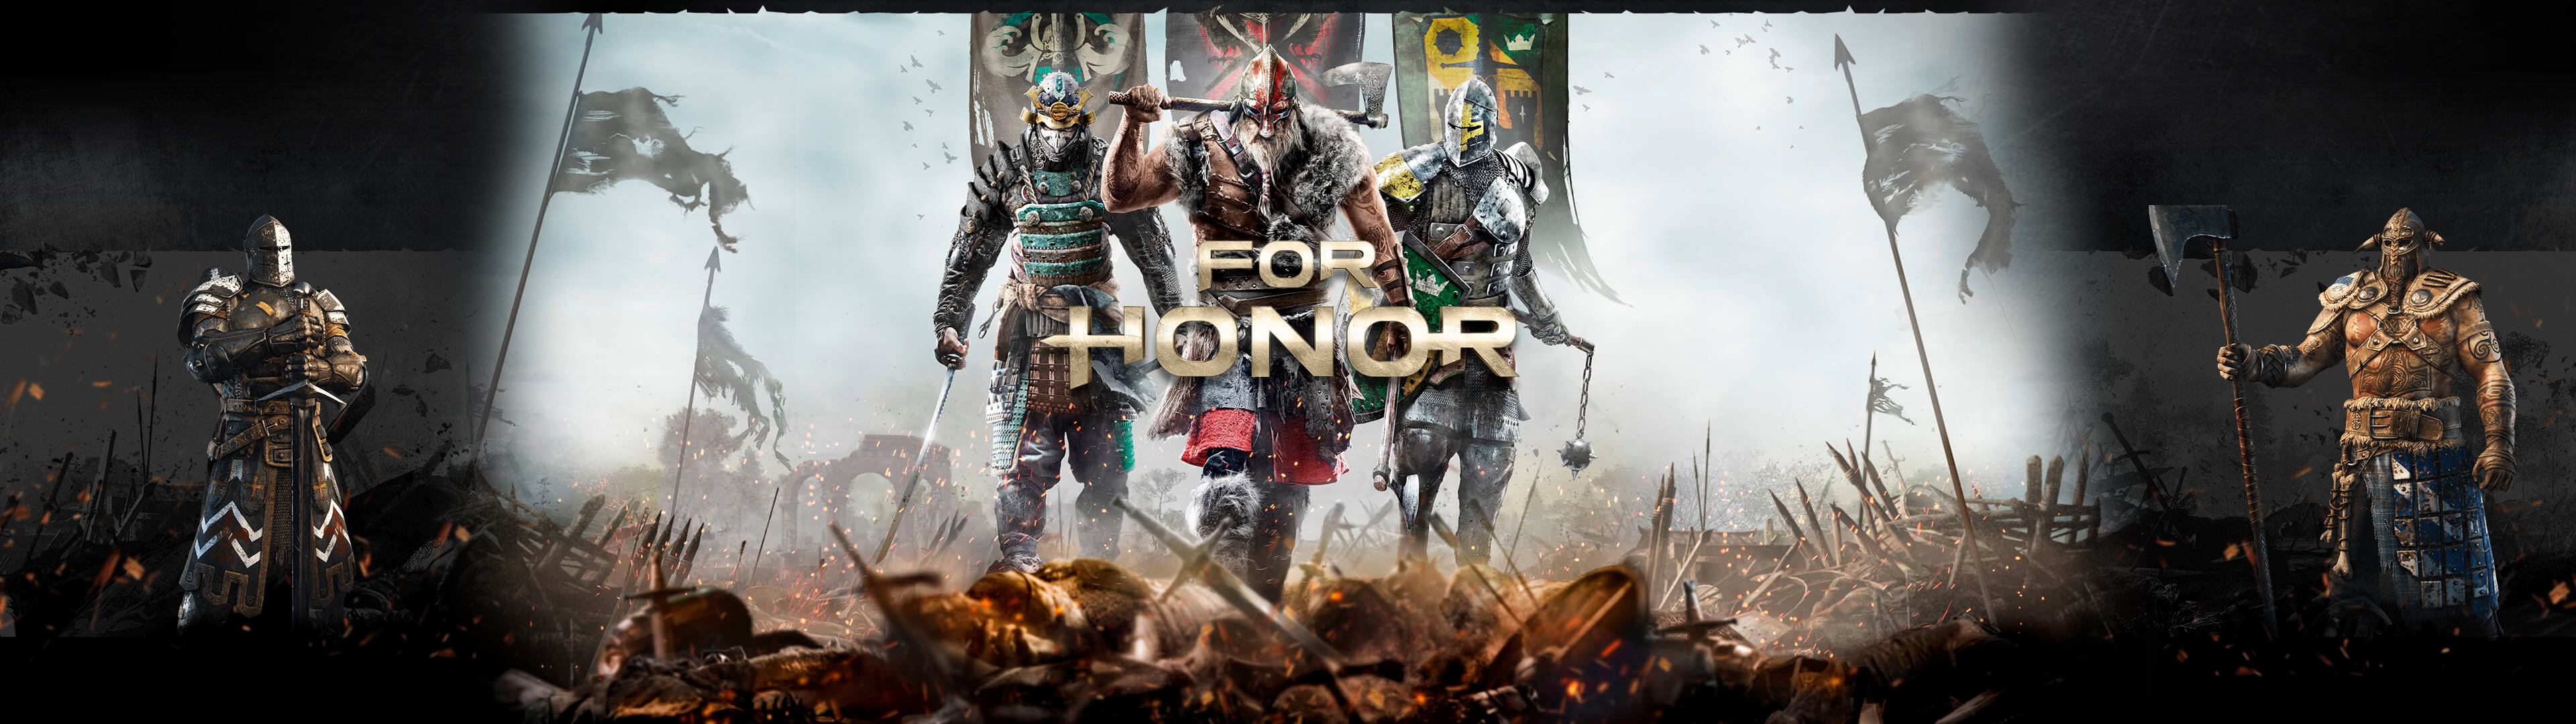 For Honor Double Screen Wallpaper Hd Hd Wallpaper Ps4 Game